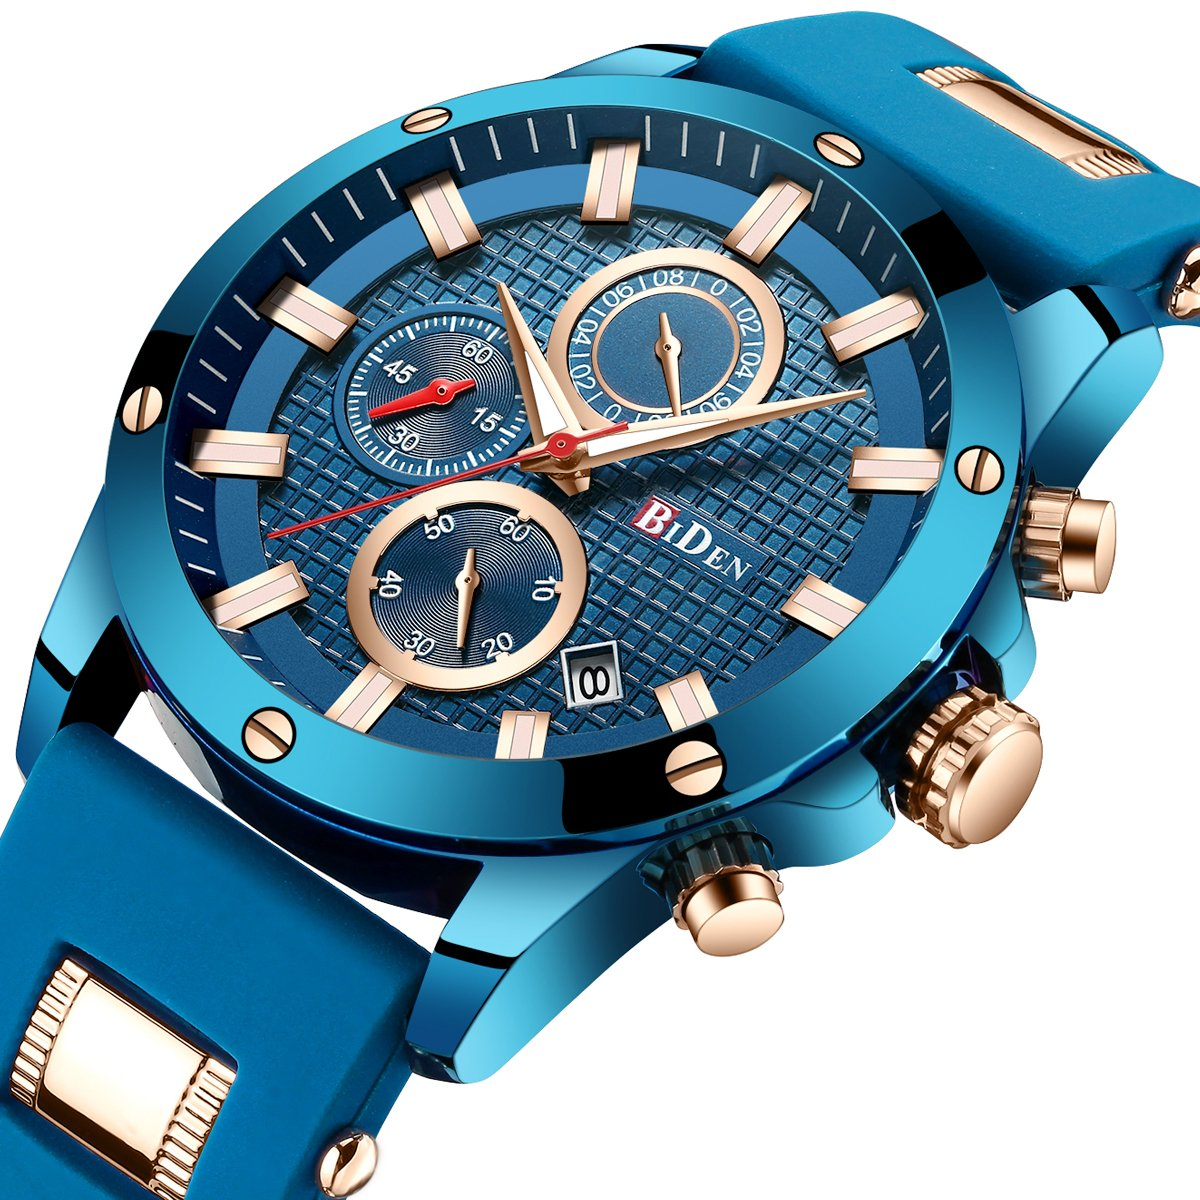 Men Business Watches Chronograph Fashion Casual Watch Blue Sport Waterproof Quartz Wrist Watch for Men with Date Display